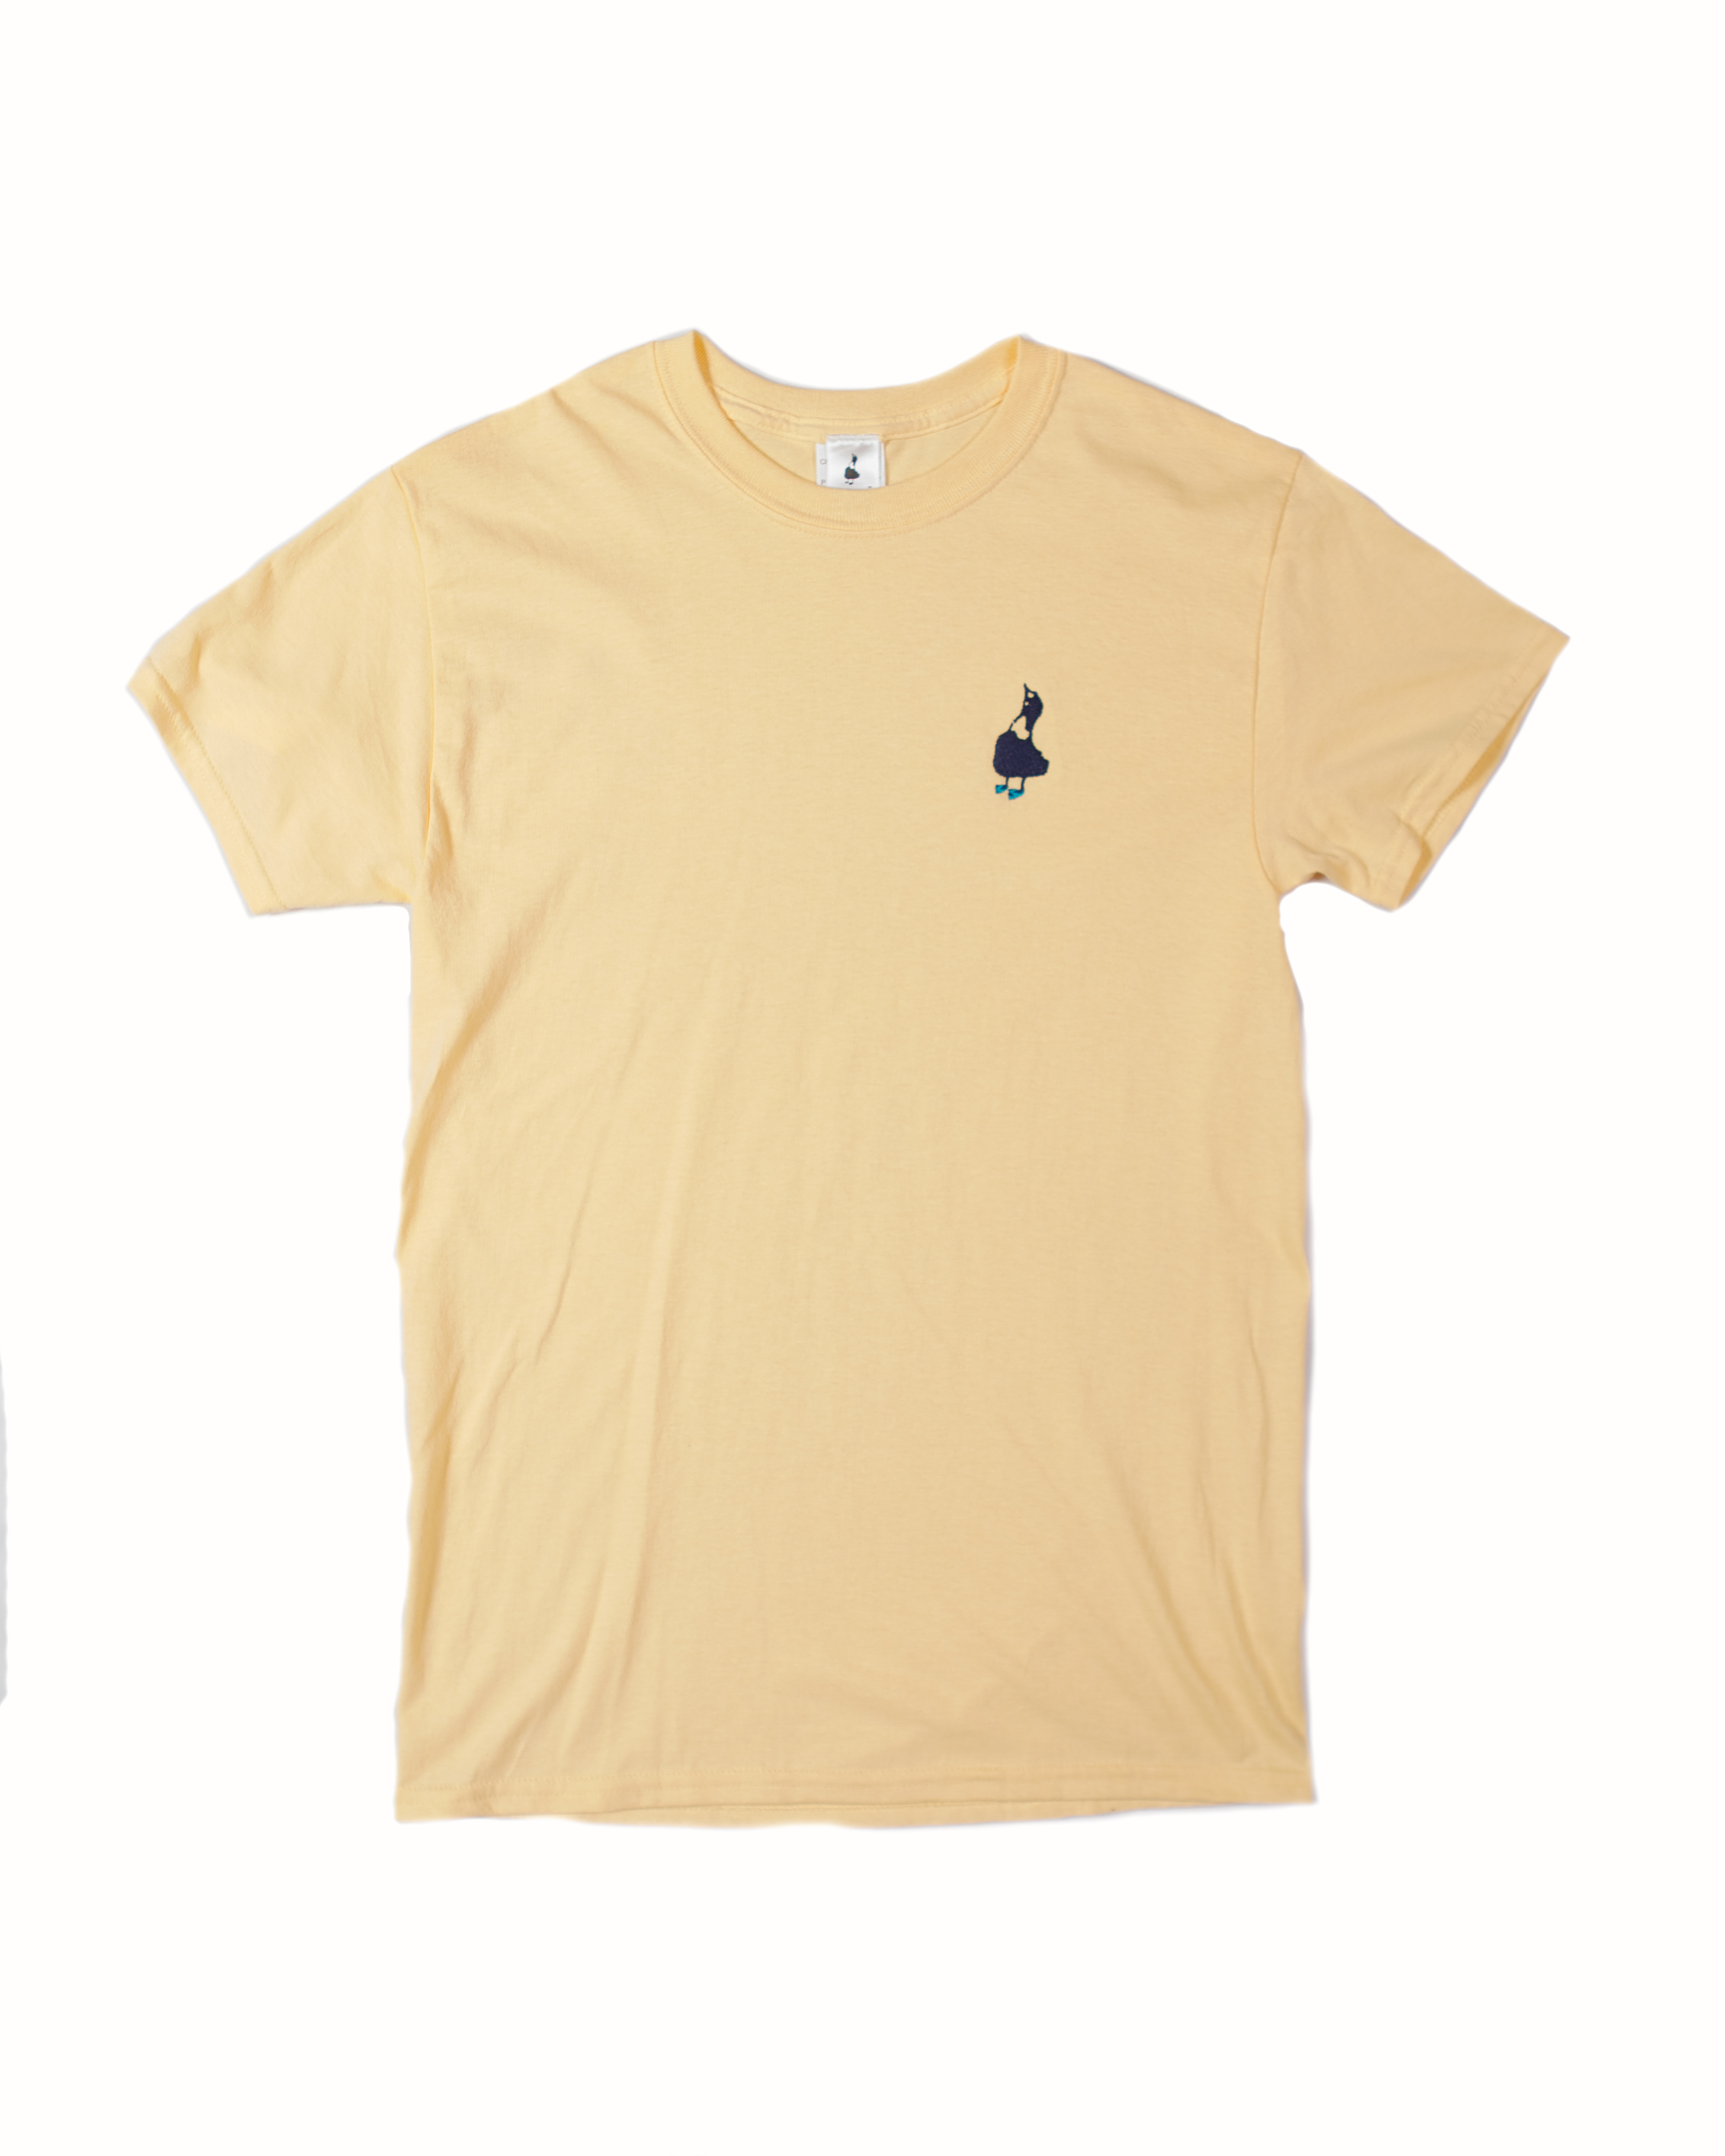 Z_Yellow Mens T